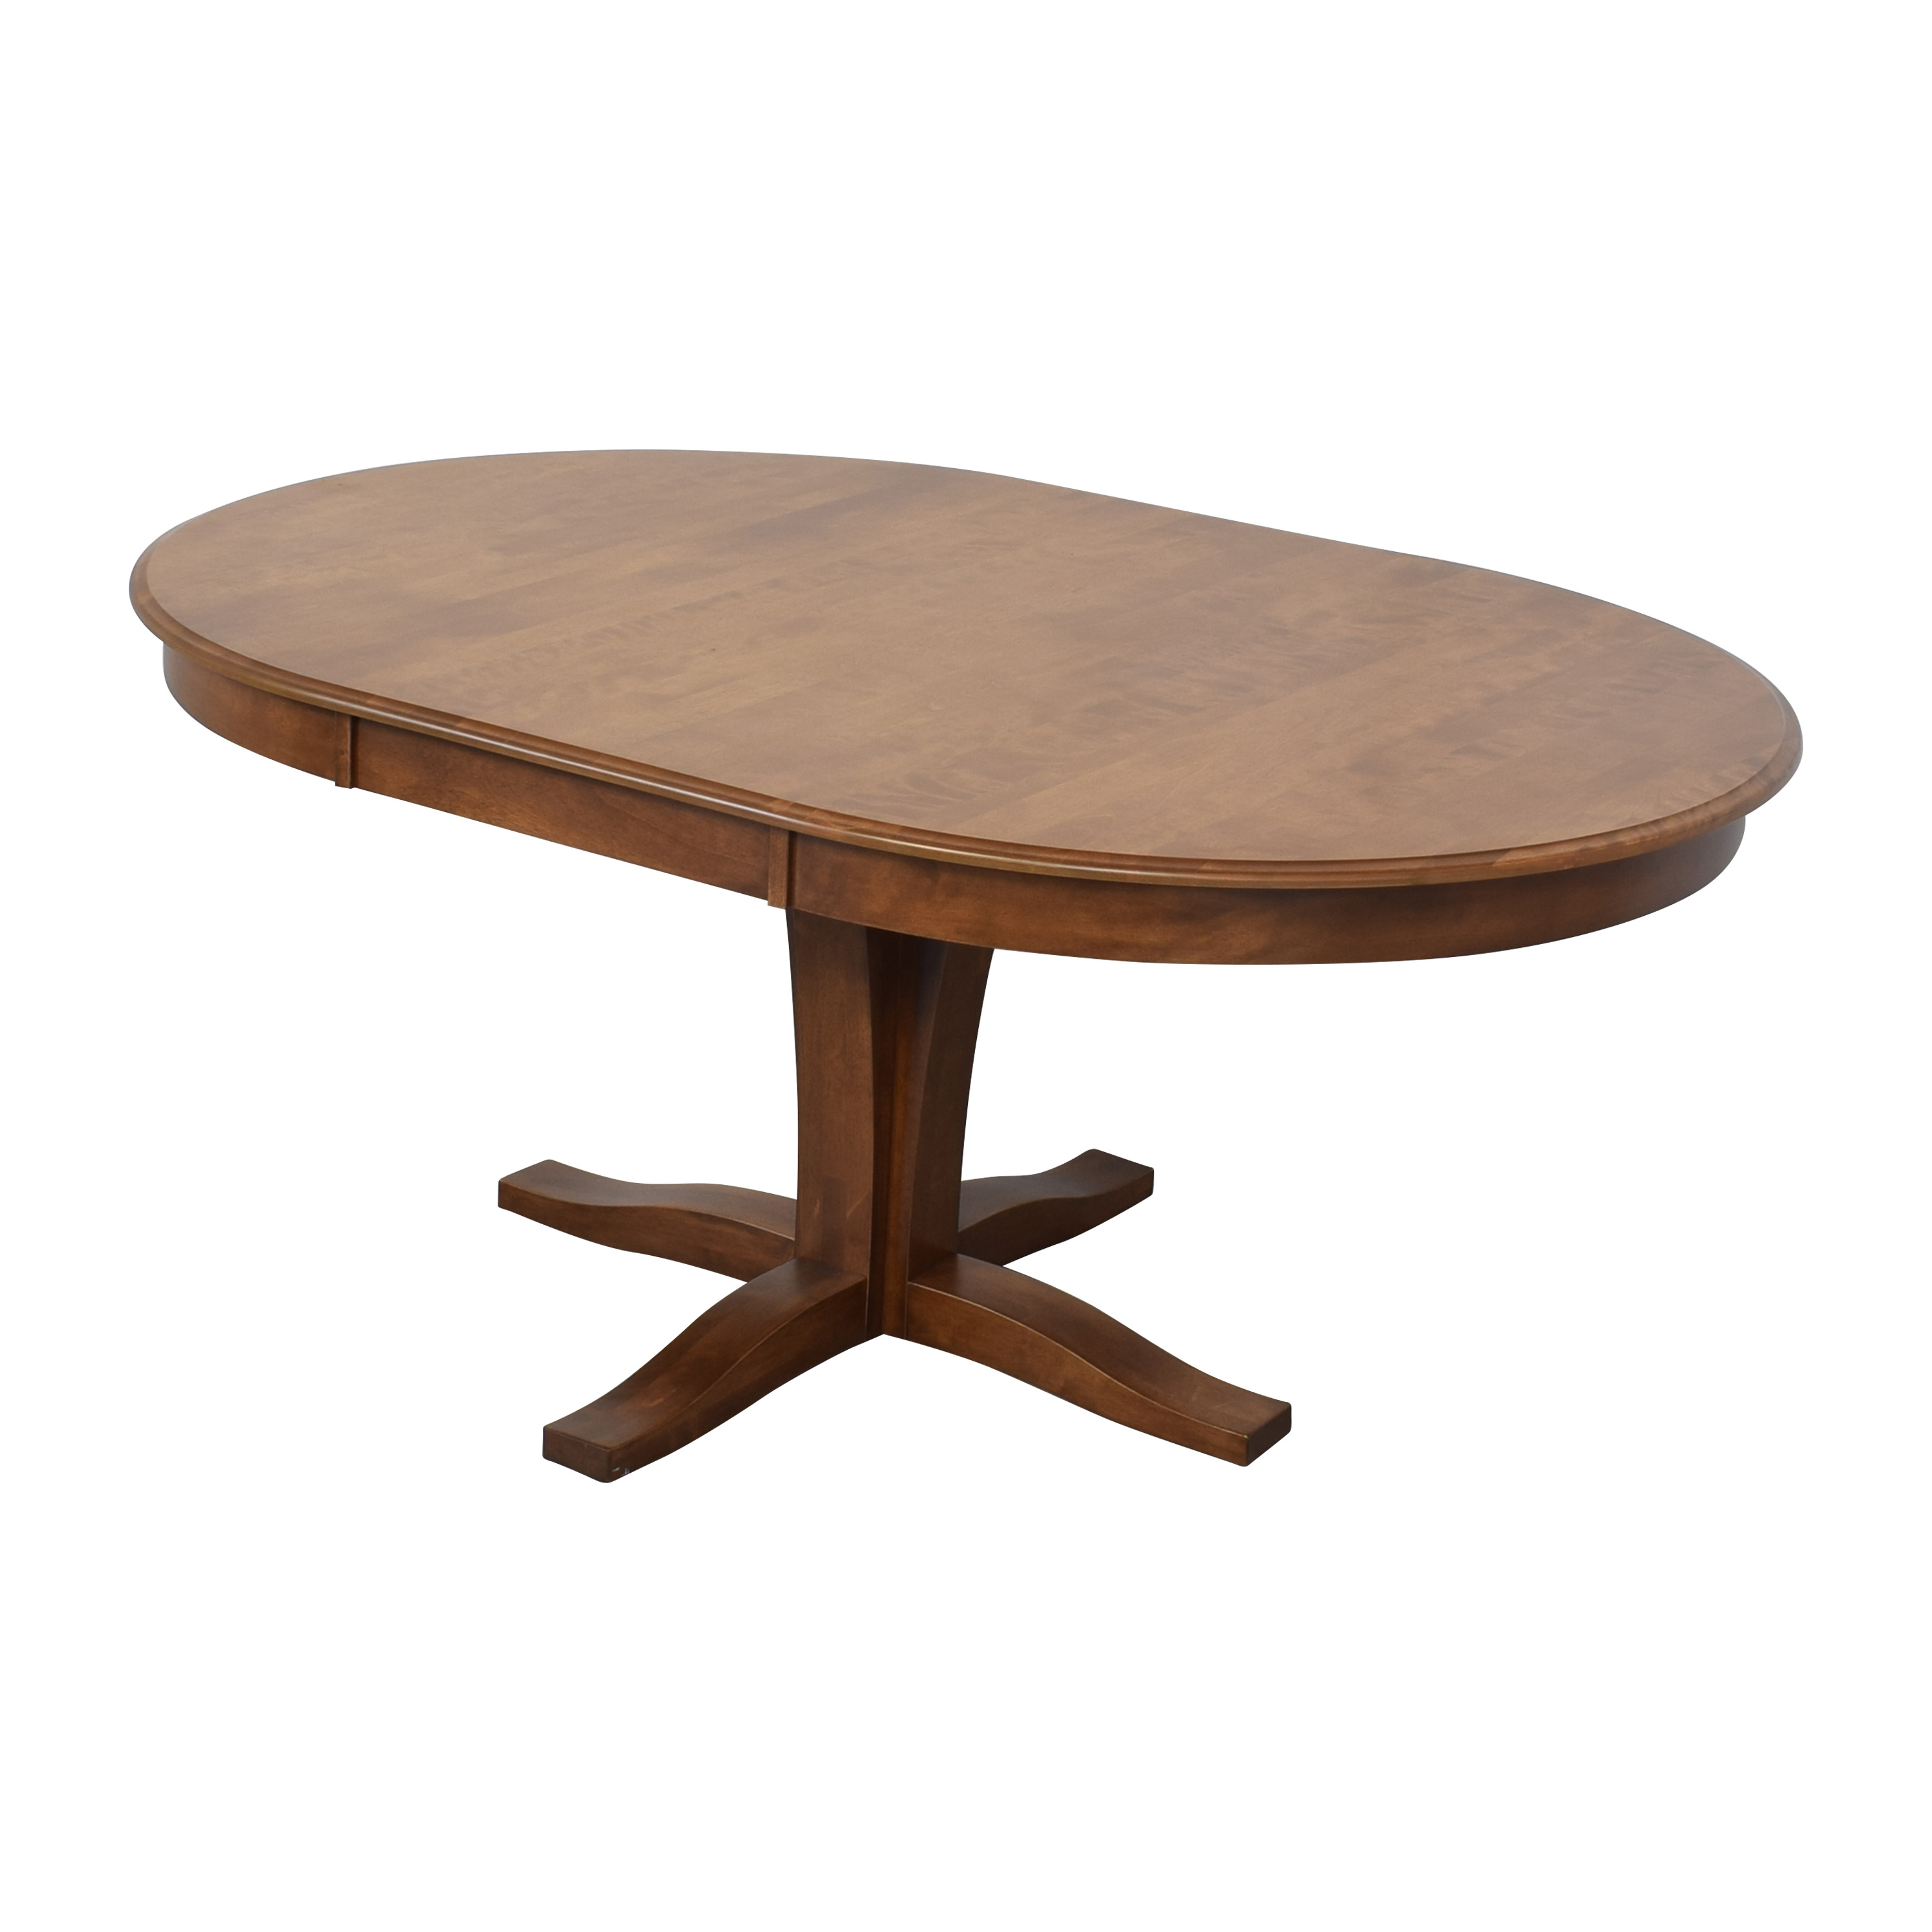 Canadel Canadel Pedestal Dining Table on sale